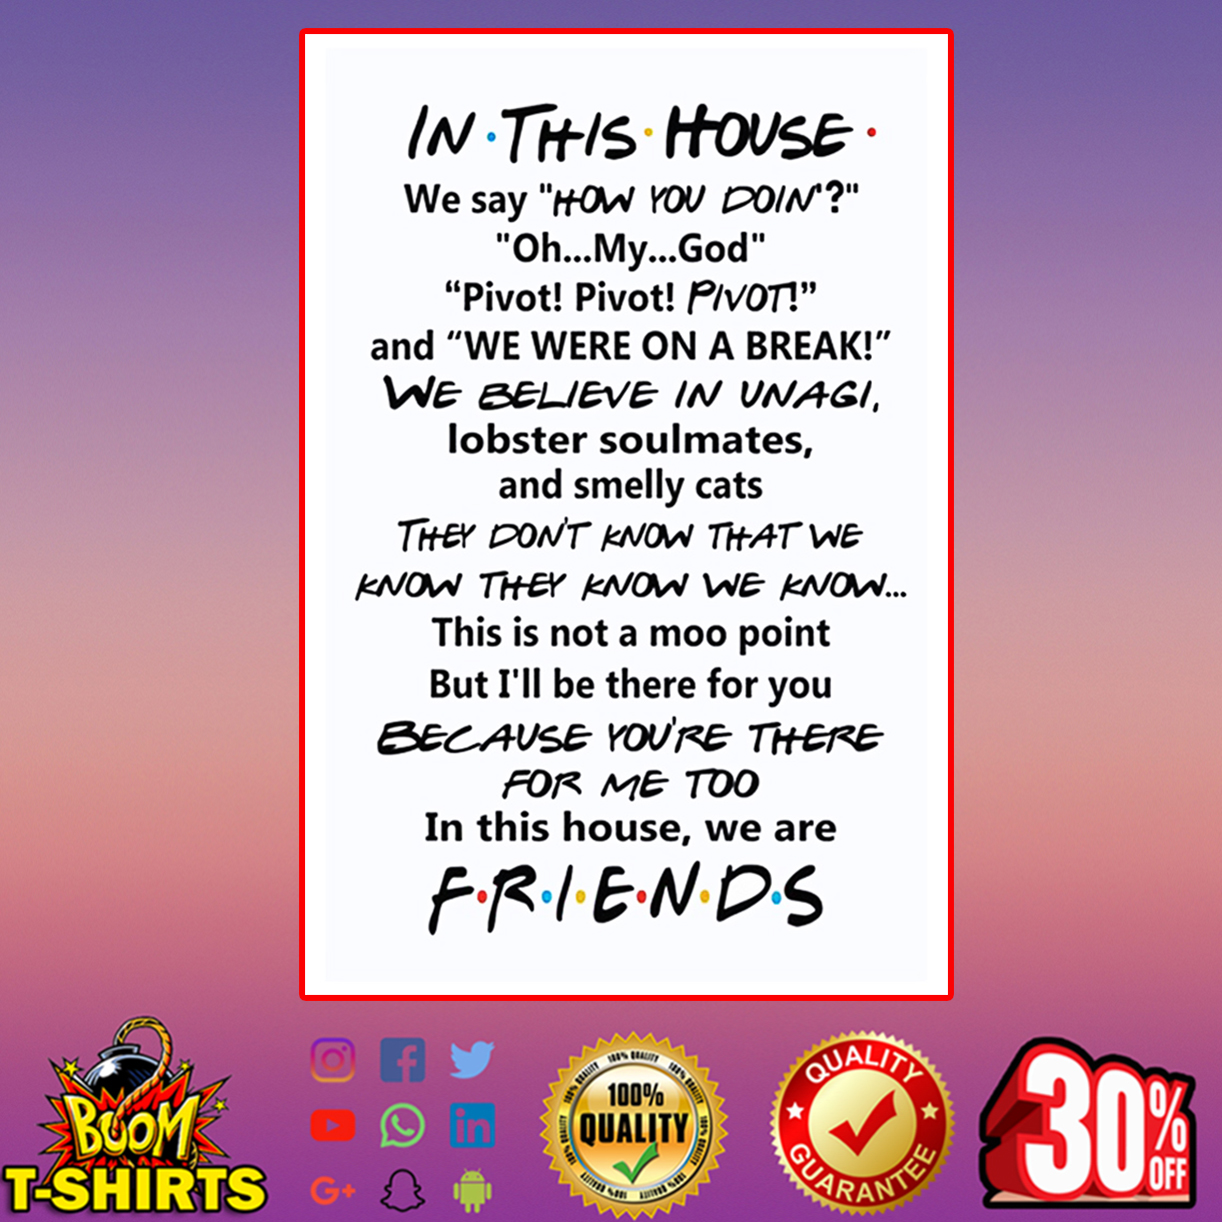 In this house we say how you doin' friends poster